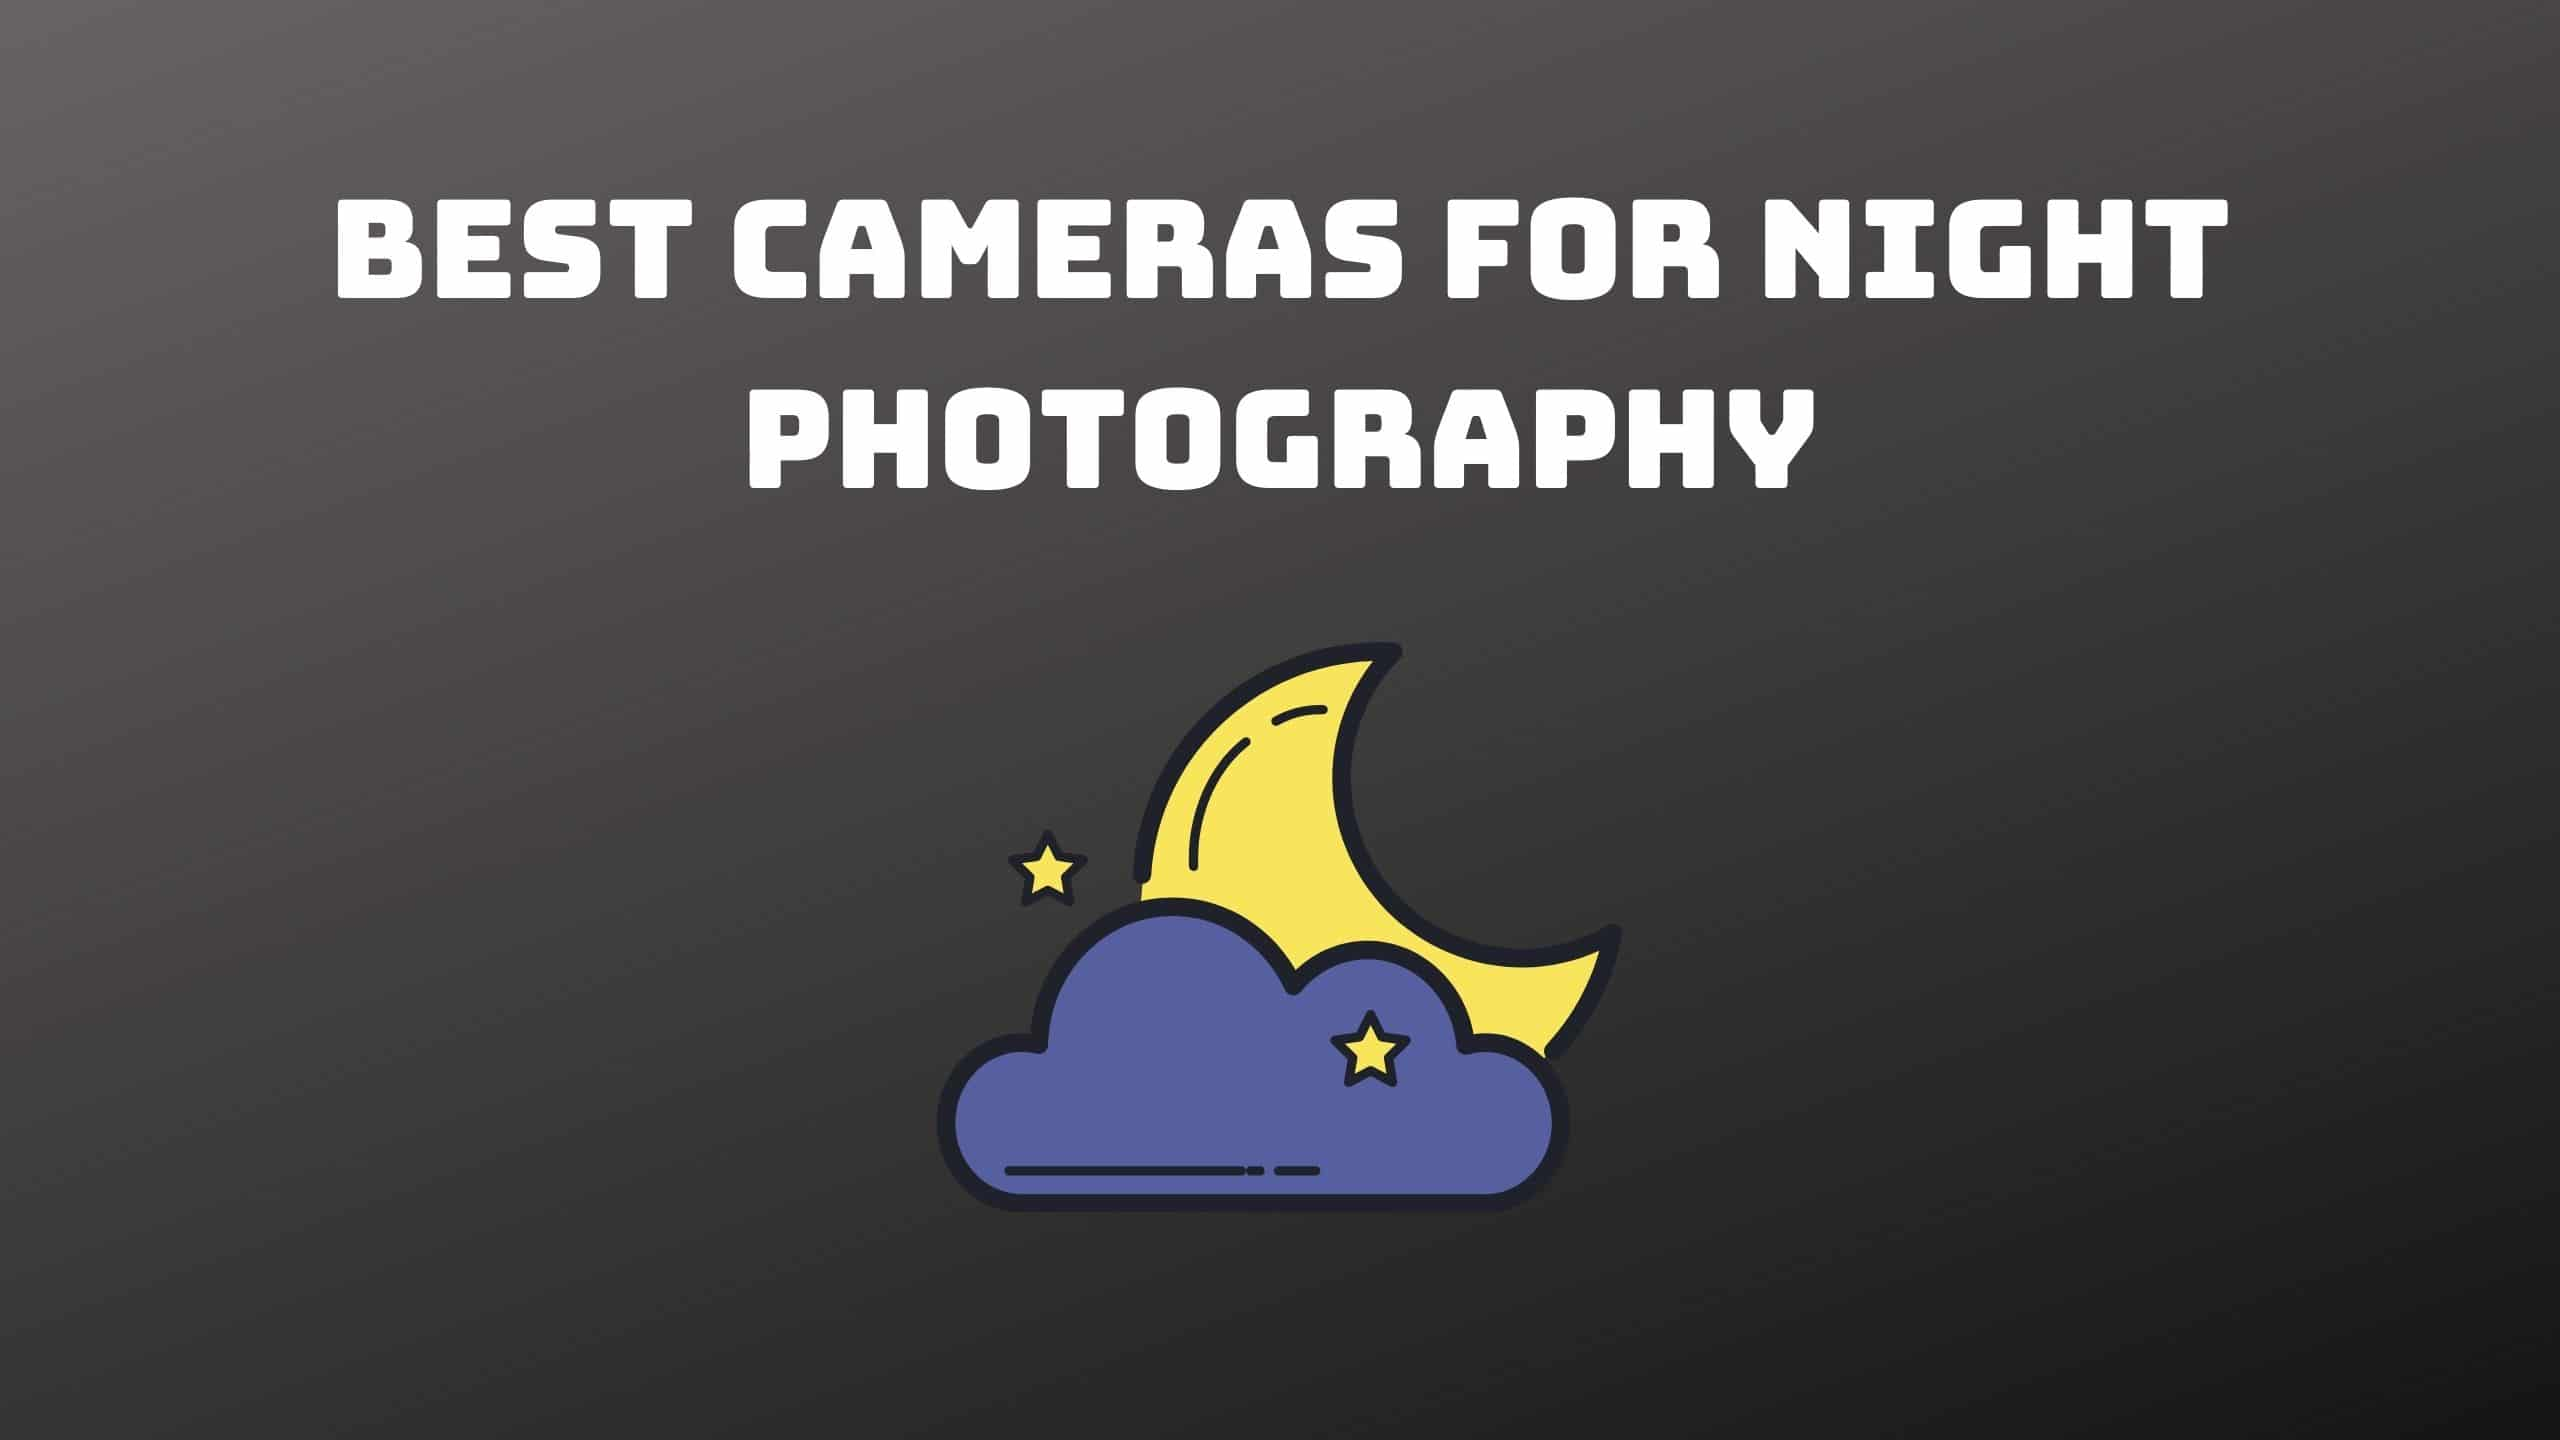 Best Cameras for Night Photography (1)